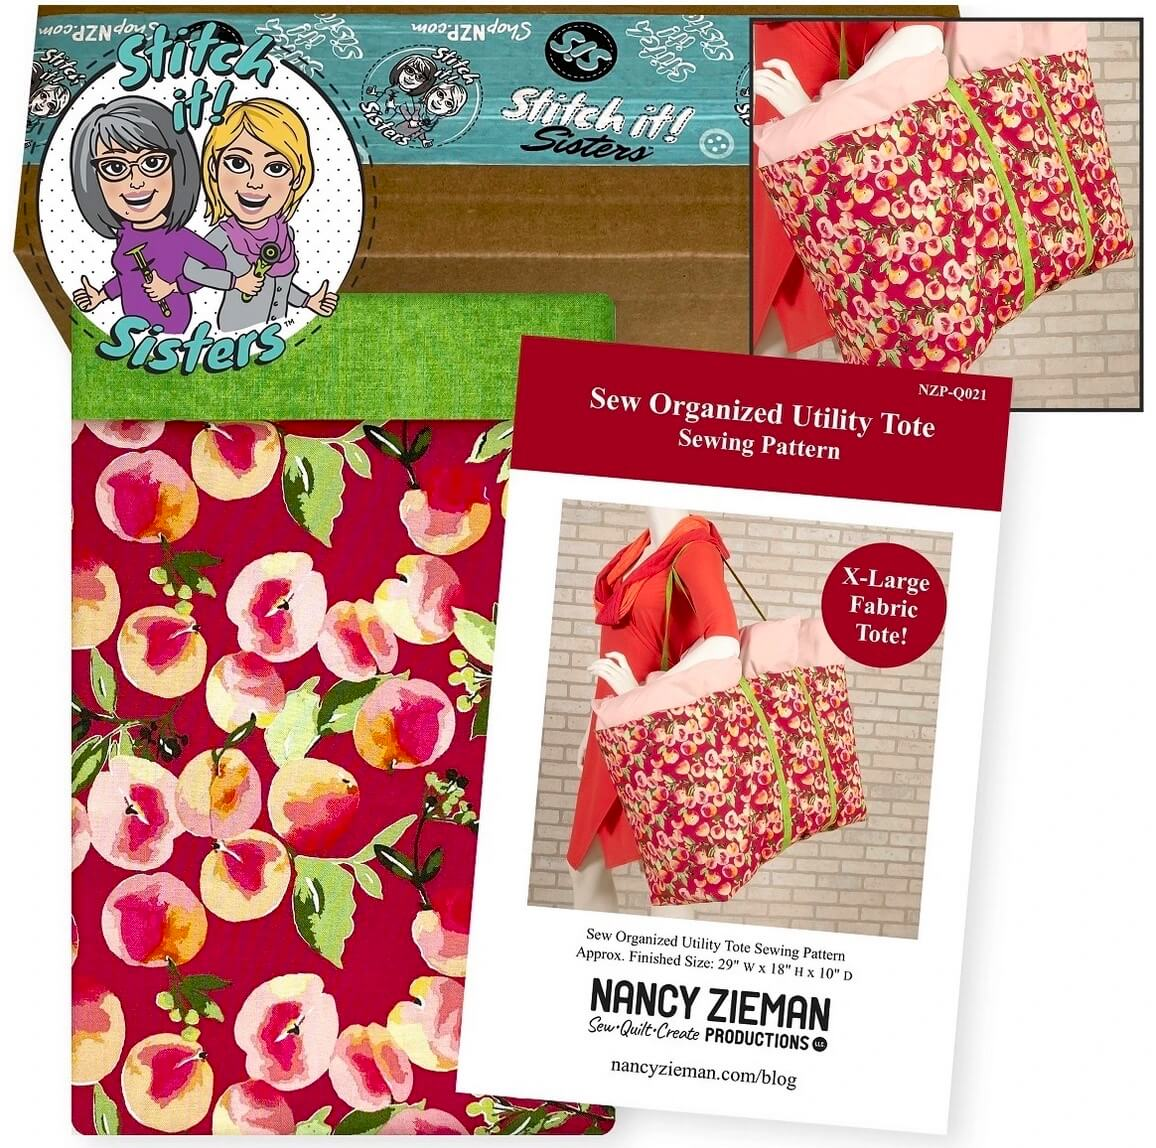 Sew Organized Utility Tote Bundle Box—Red Available at Nancy Zieman Productions ShopNZP.com